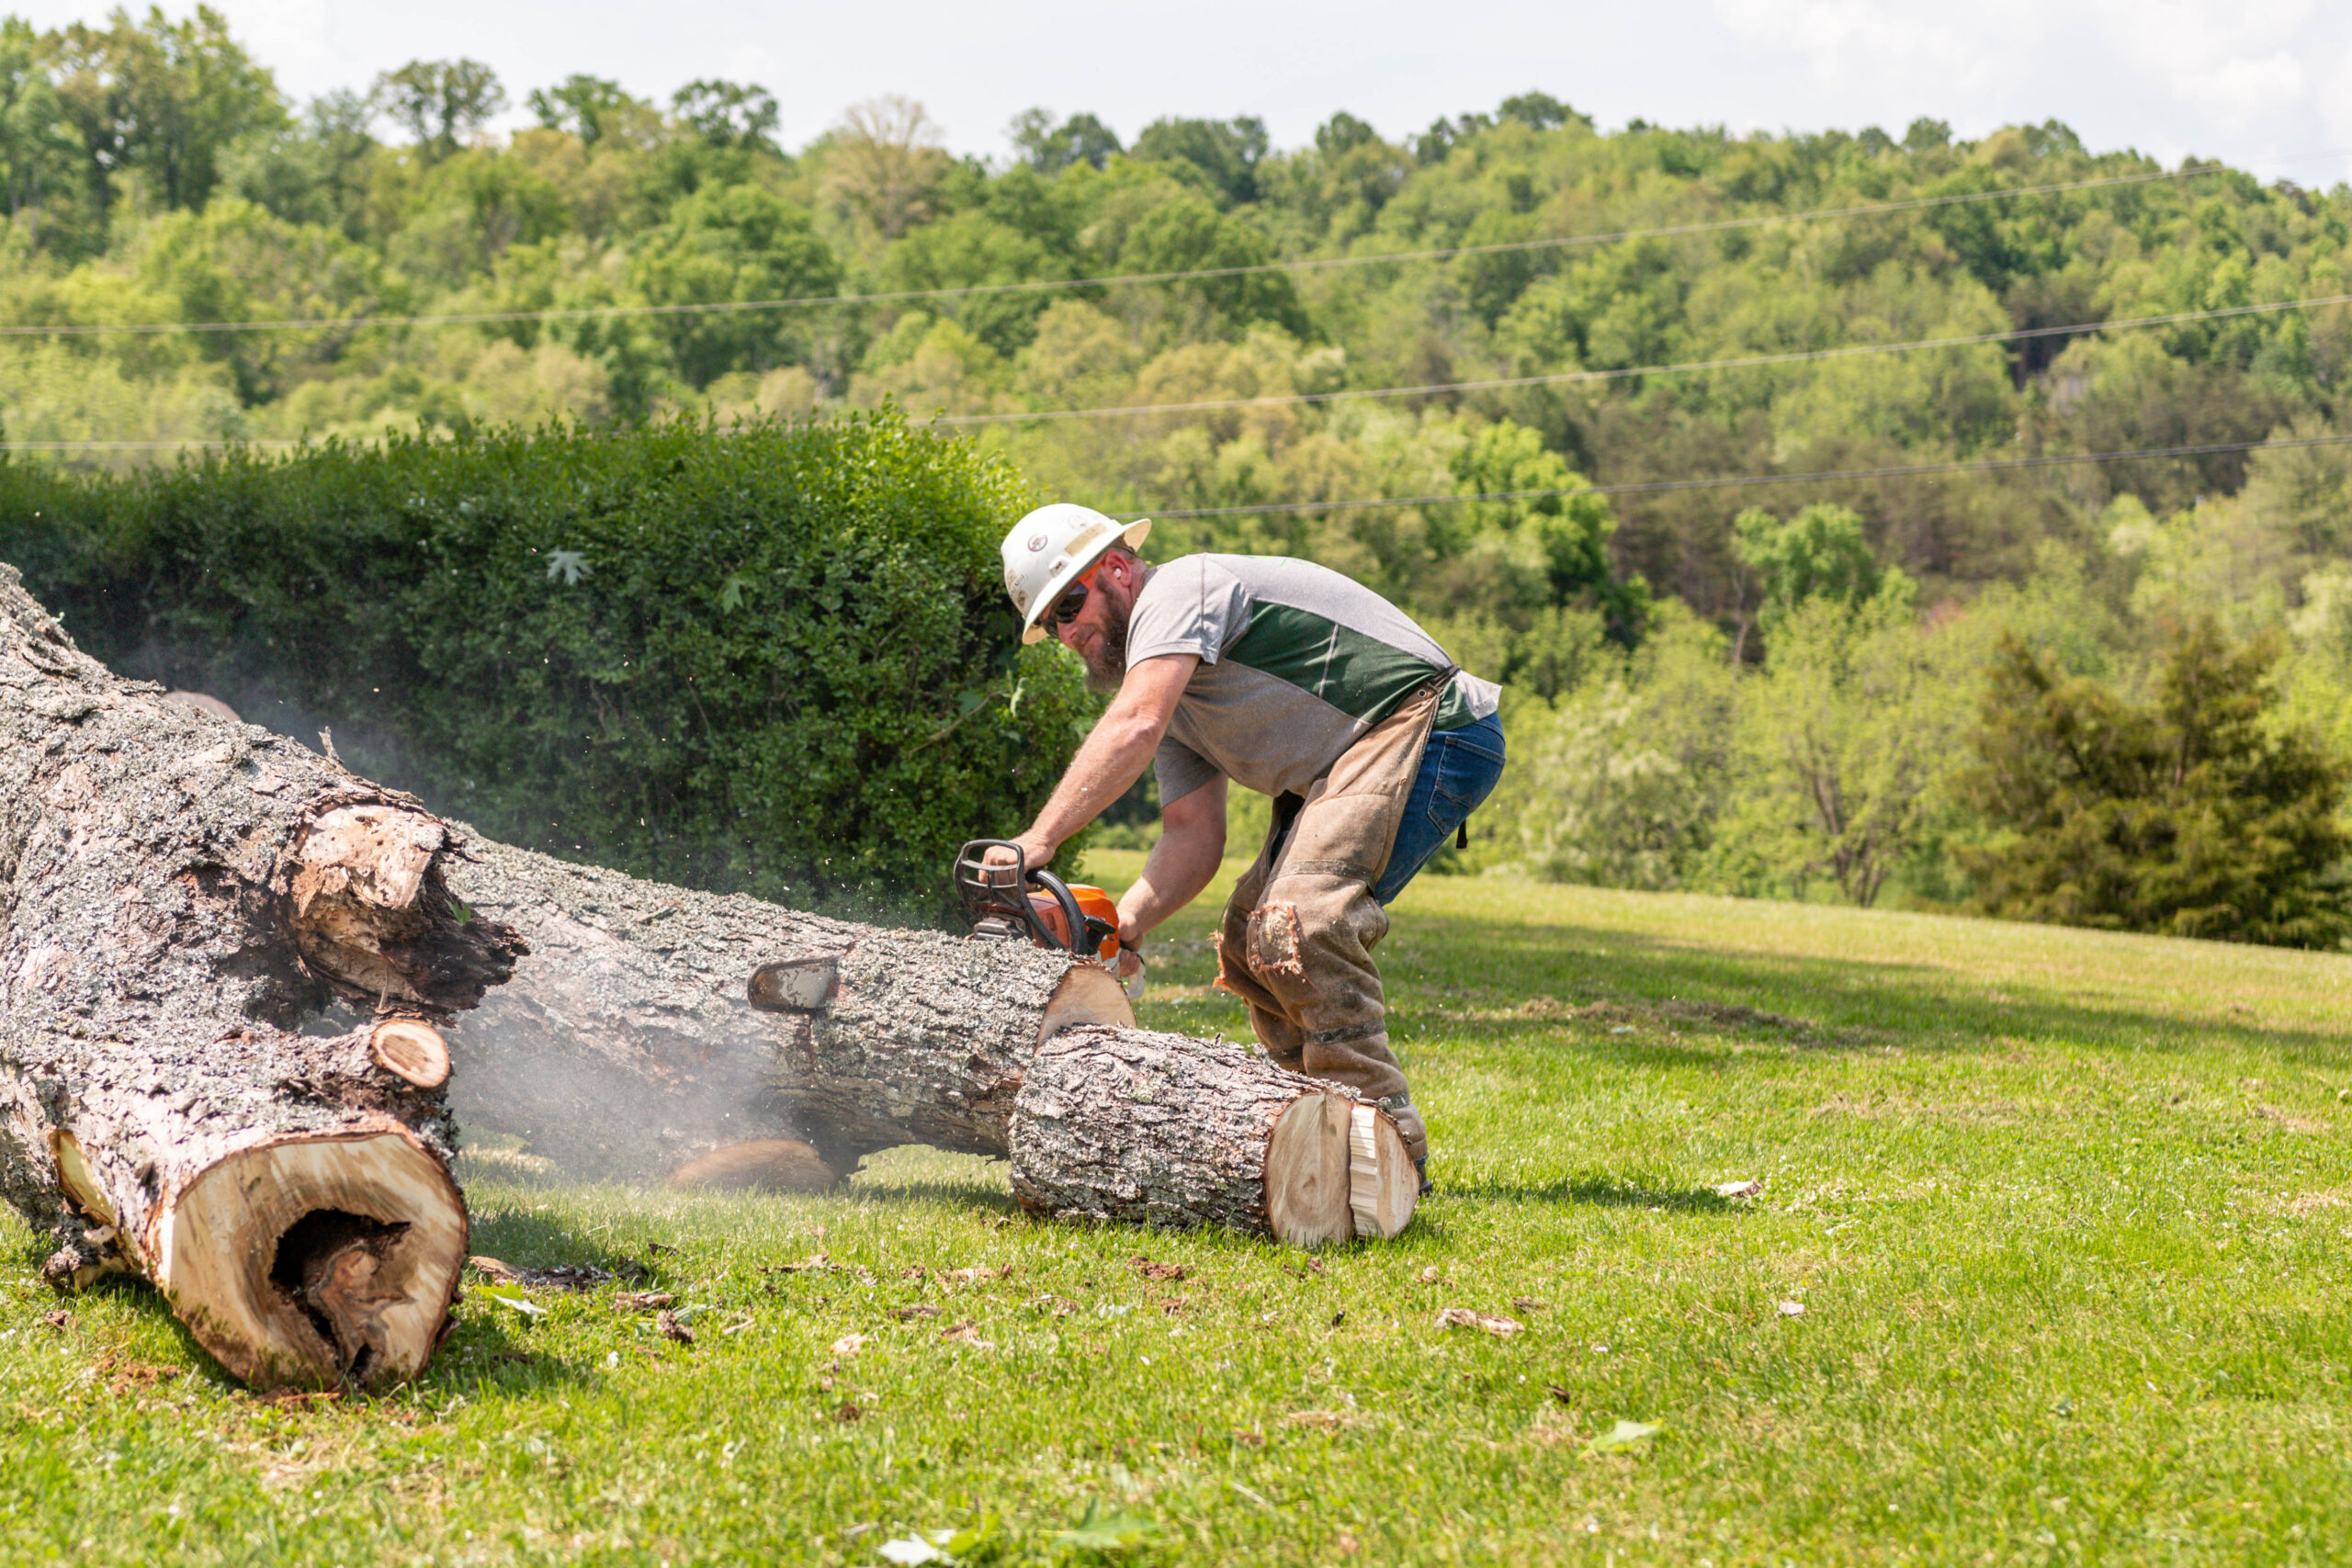 Cutting The Tree Into Smaller Pieces